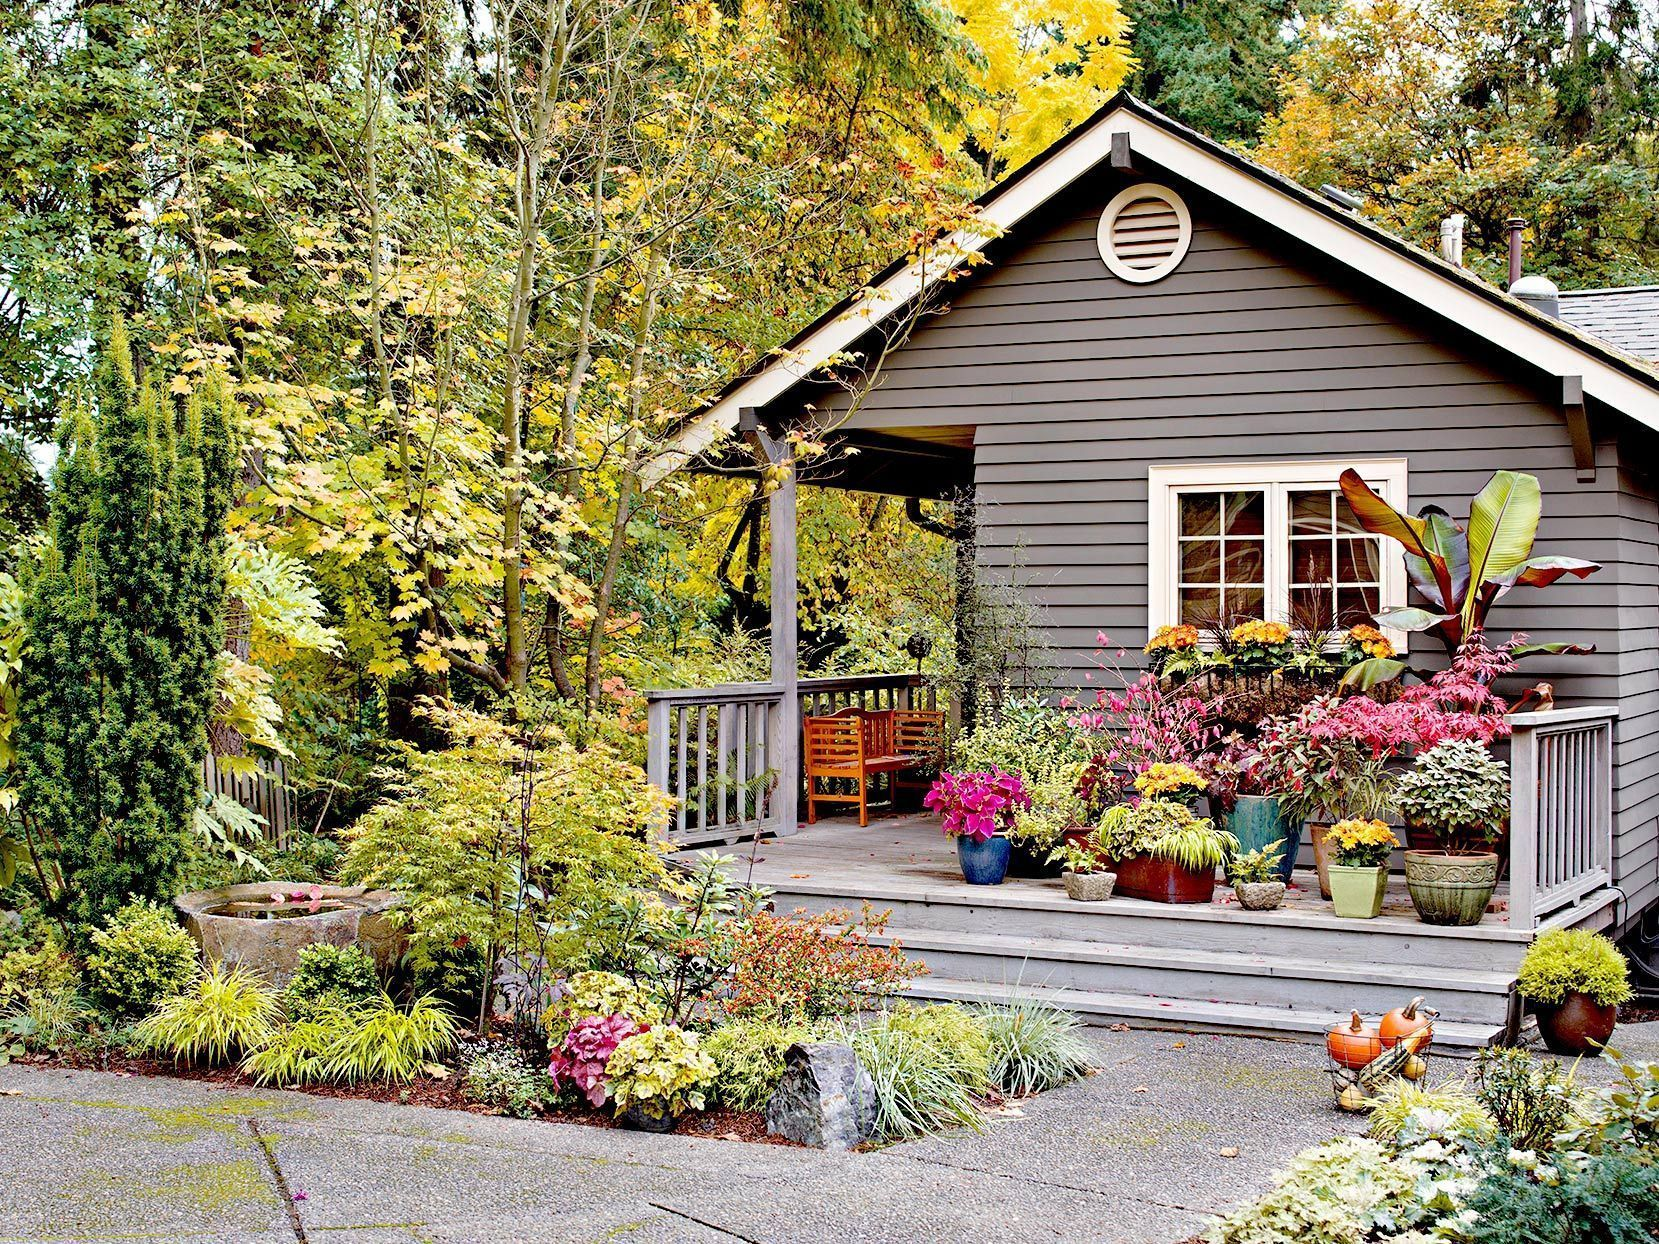 6 Essential Curb Appeal Ideas for Front Porches #frontporchideascurbappeal 6 Essential Curb Appeal Ideas for Front Porches | Better Homes & Gardens #frontporchideascurbappeal 6 Essential Curb Appeal Ideas for Front Porches #frontporchideascurbappeal 6 Essential Curb Appeal Ideas for Front Porches | Better Homes & Gardens #frontporchideascurbappeal 6 Essential Curb Appeal Ideas for Front Porches #frontporchideascurbappeal 6 Essential Curb Appeal Ideas for Front Porches | Better Homes & Gardens #f #frontporchideascurbappeal